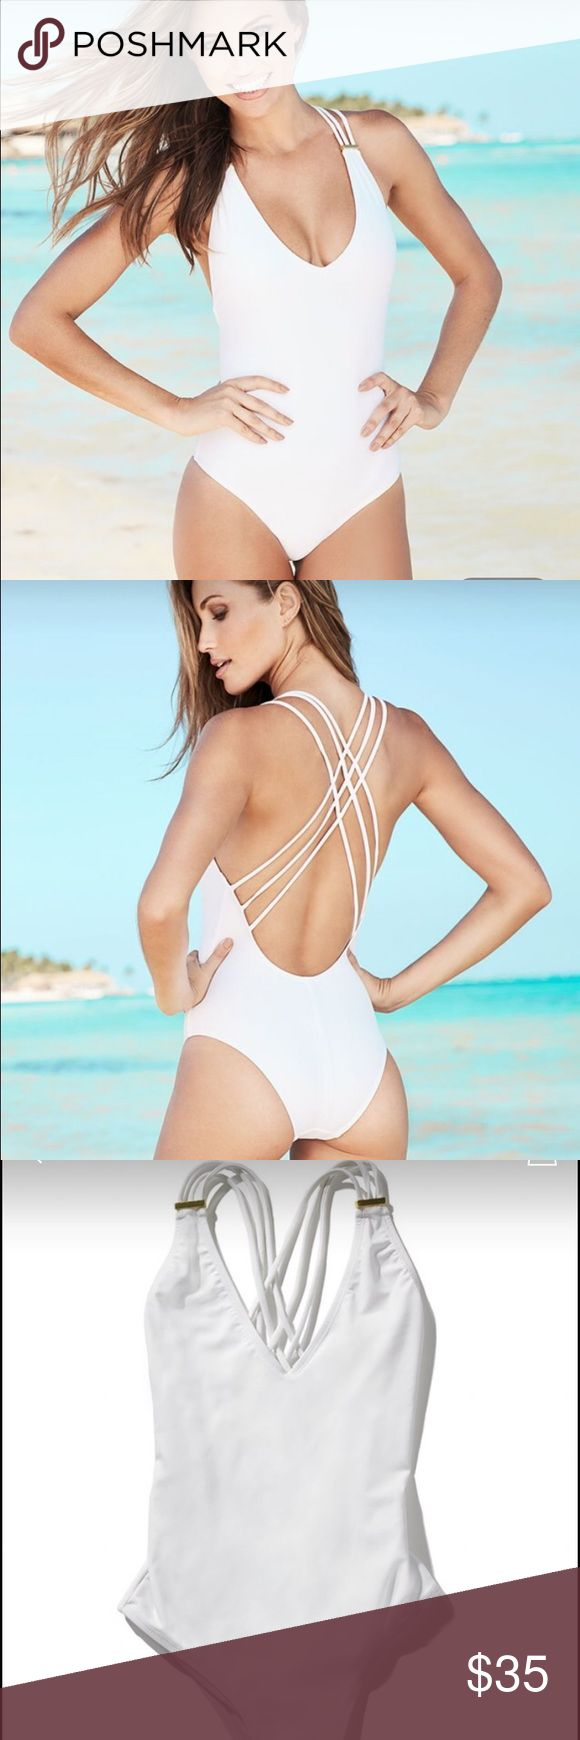 "Adore Me Swim New never worn adore me me swimsuit in style ""Kaia"". This is a super cute white one piece with crossing straps in the back and gold hardware on the front. This is a super flattering swim suit! I accept reasonable offers💕 Adore Me Swim One Pieces"